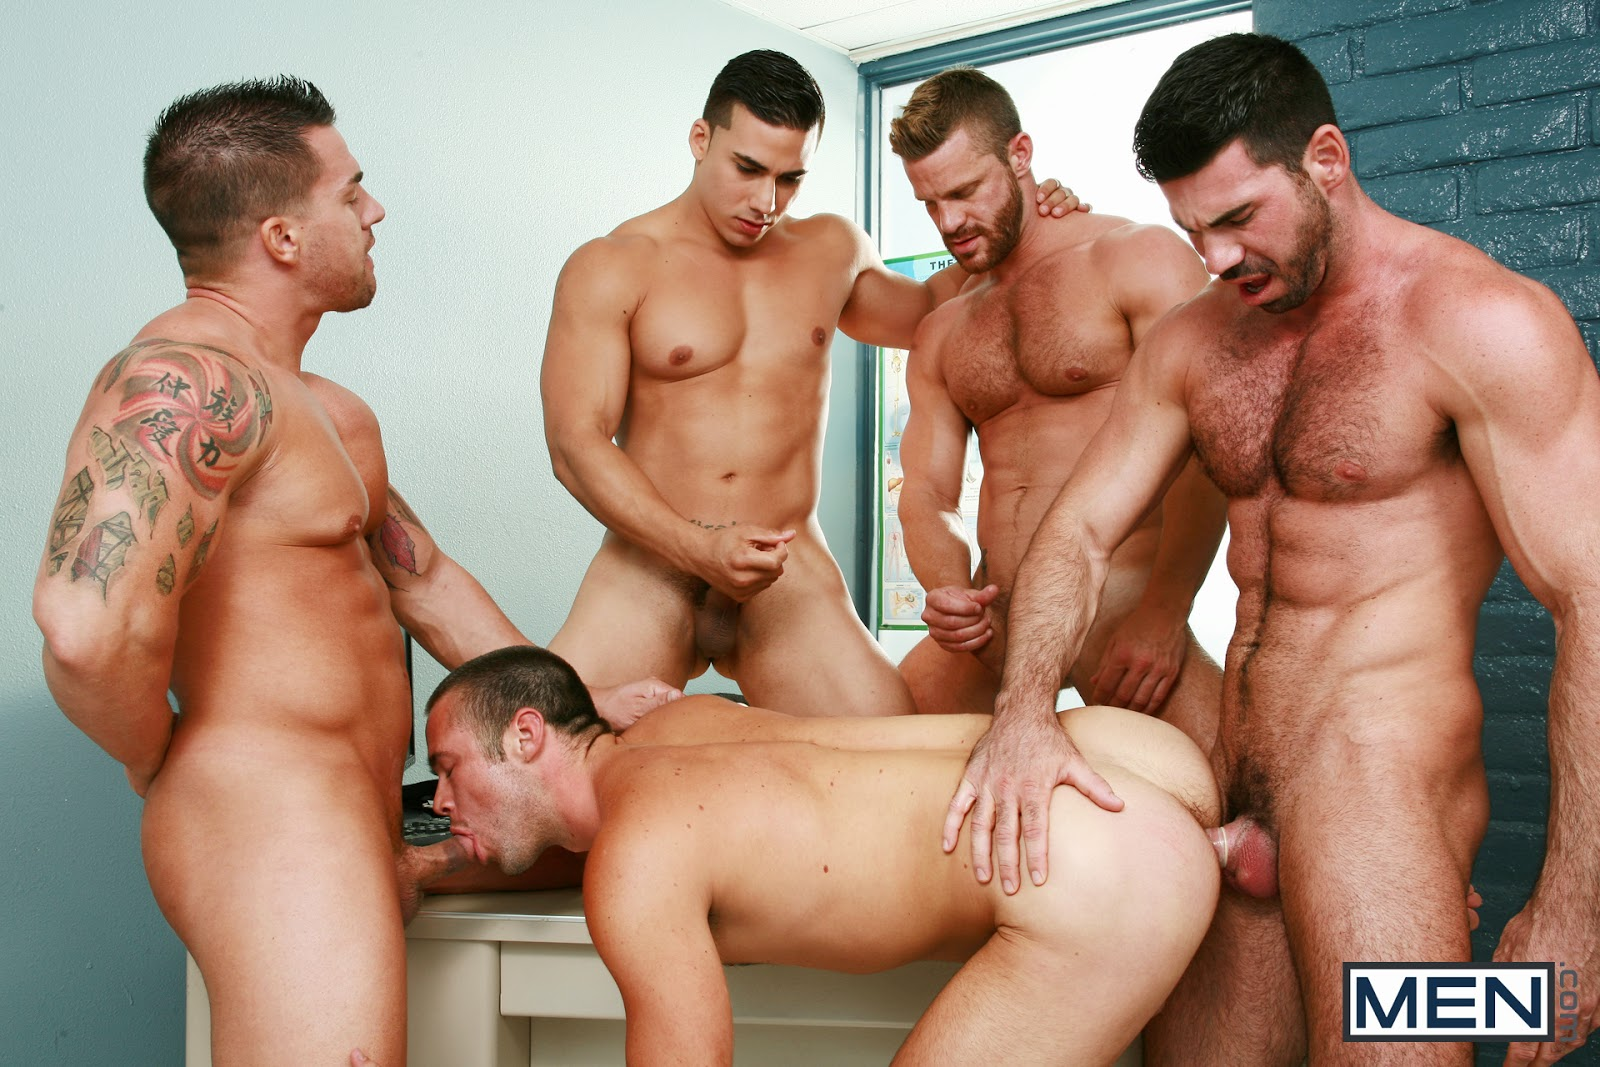 image Brian senior men giving head gay first time boys